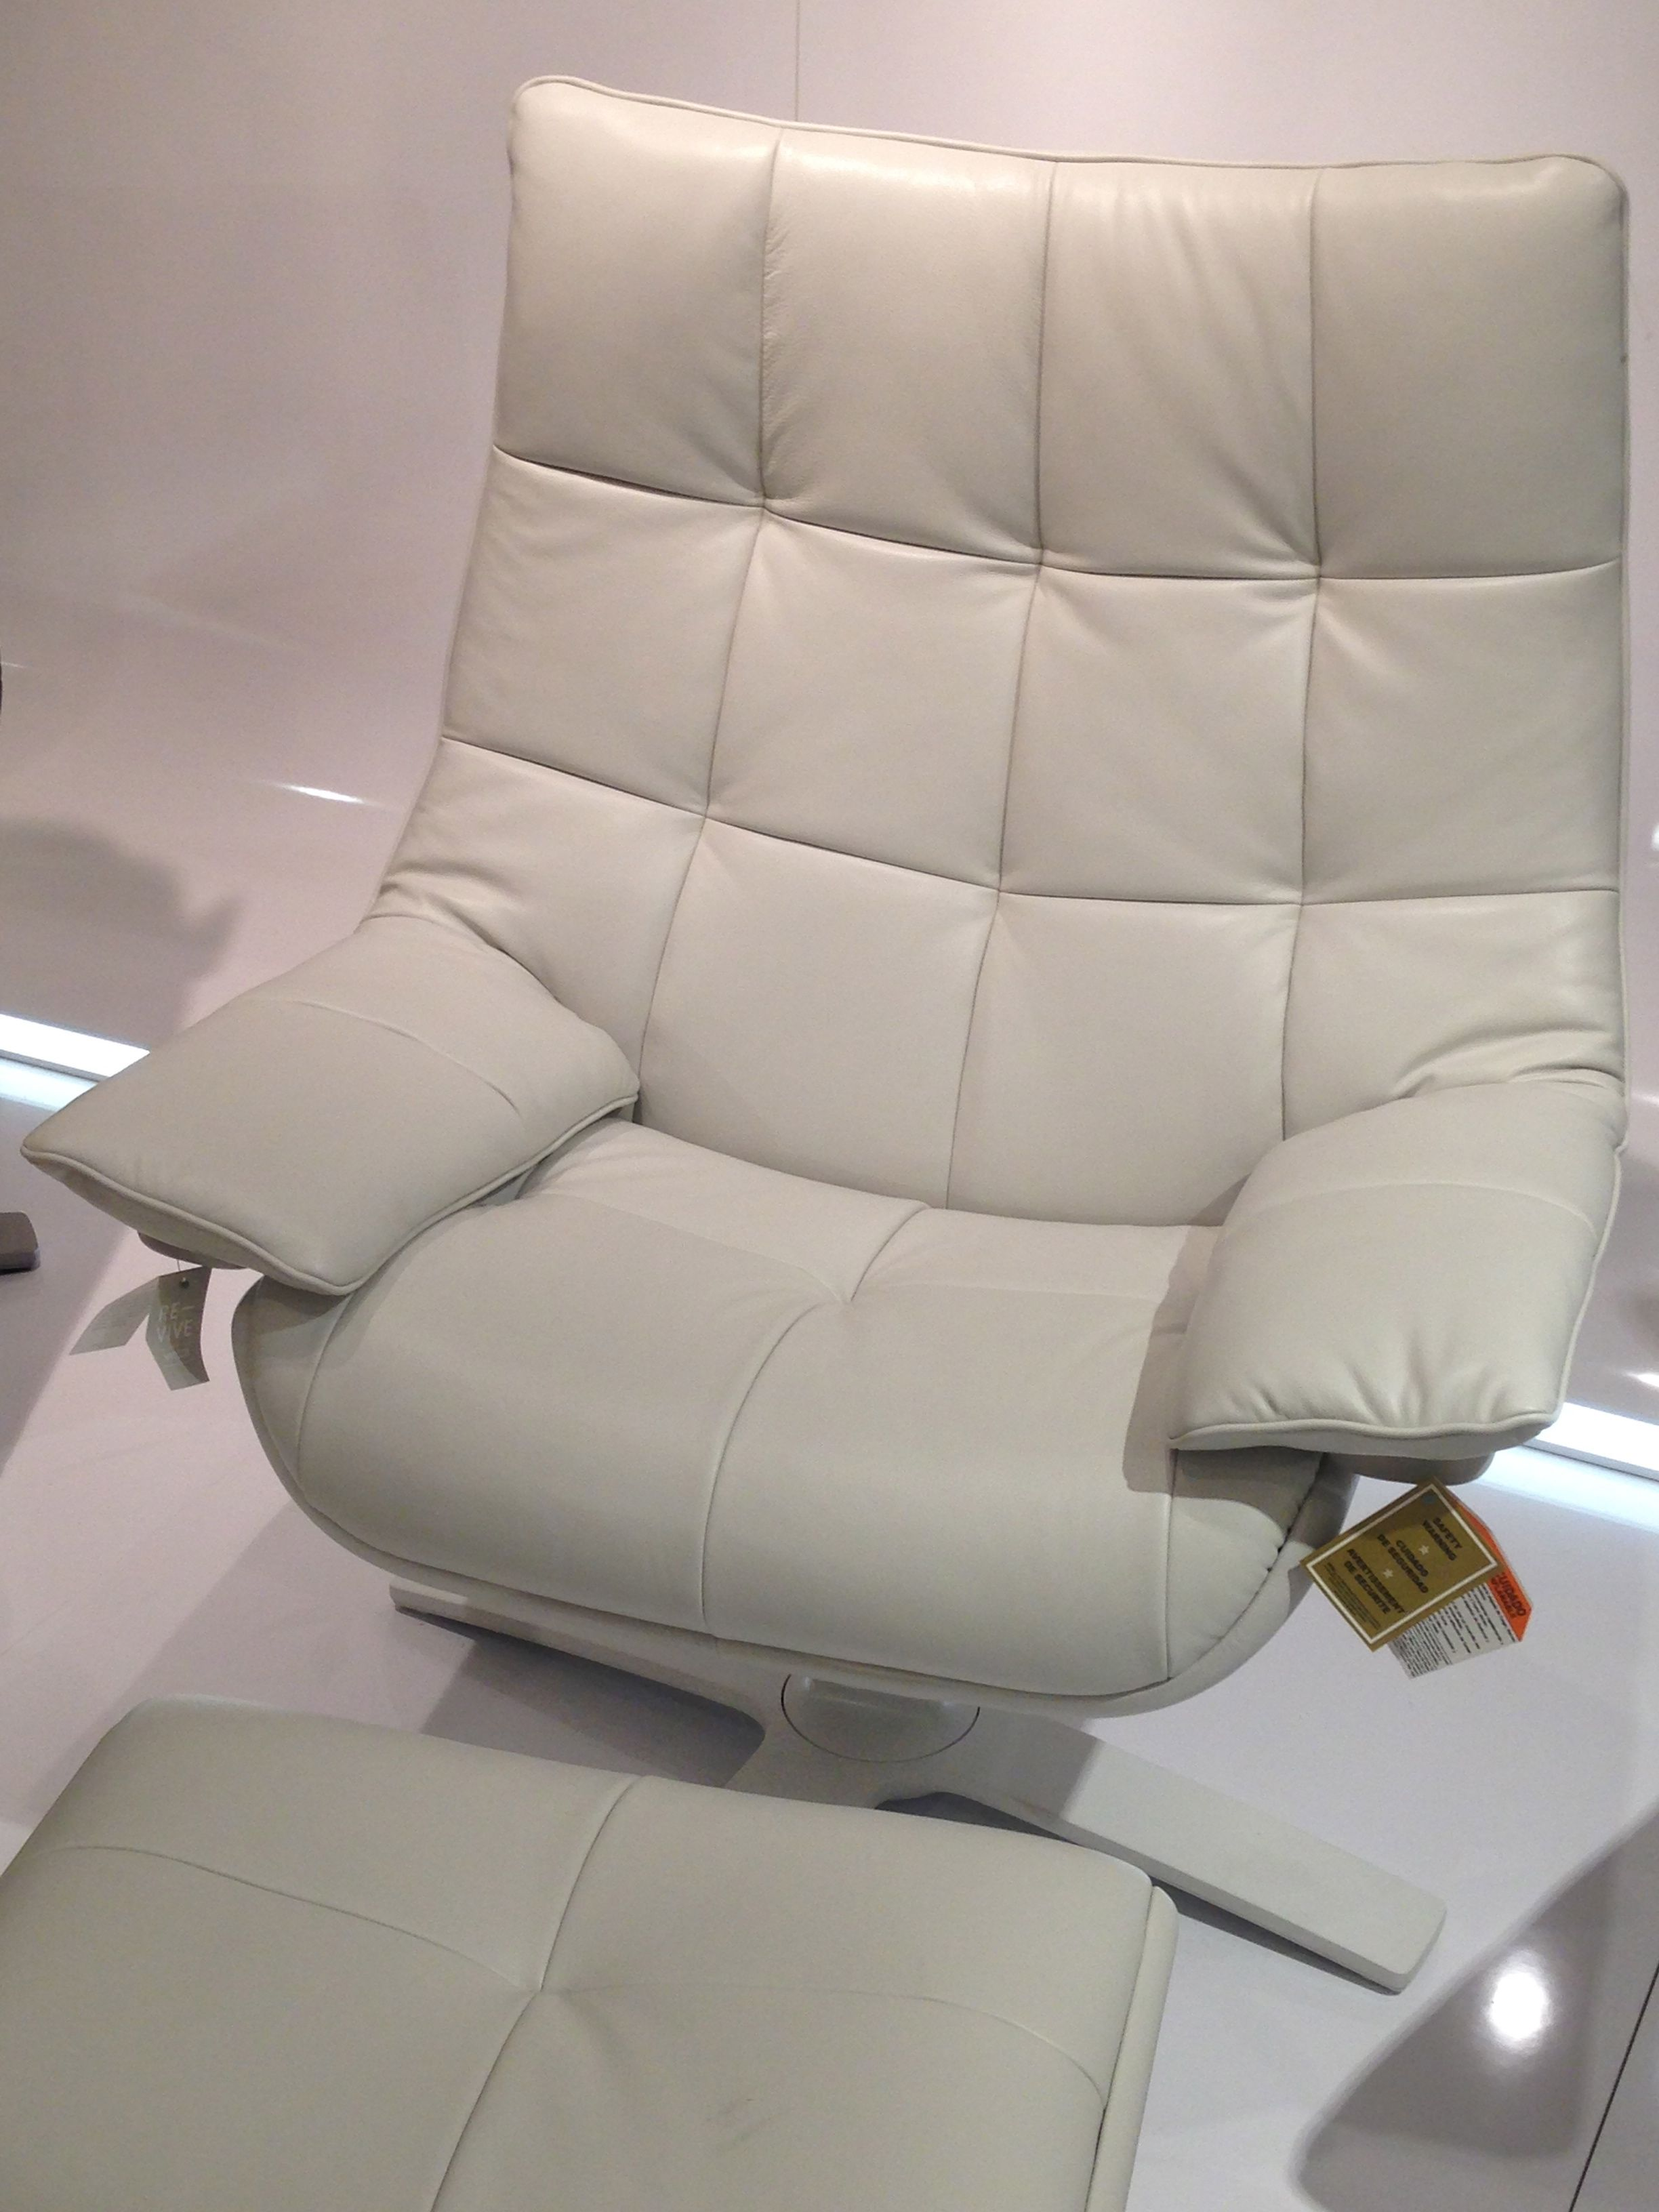 natuzzi revive chair wedding covers doncaster love doing nothing the re vive it moves as you